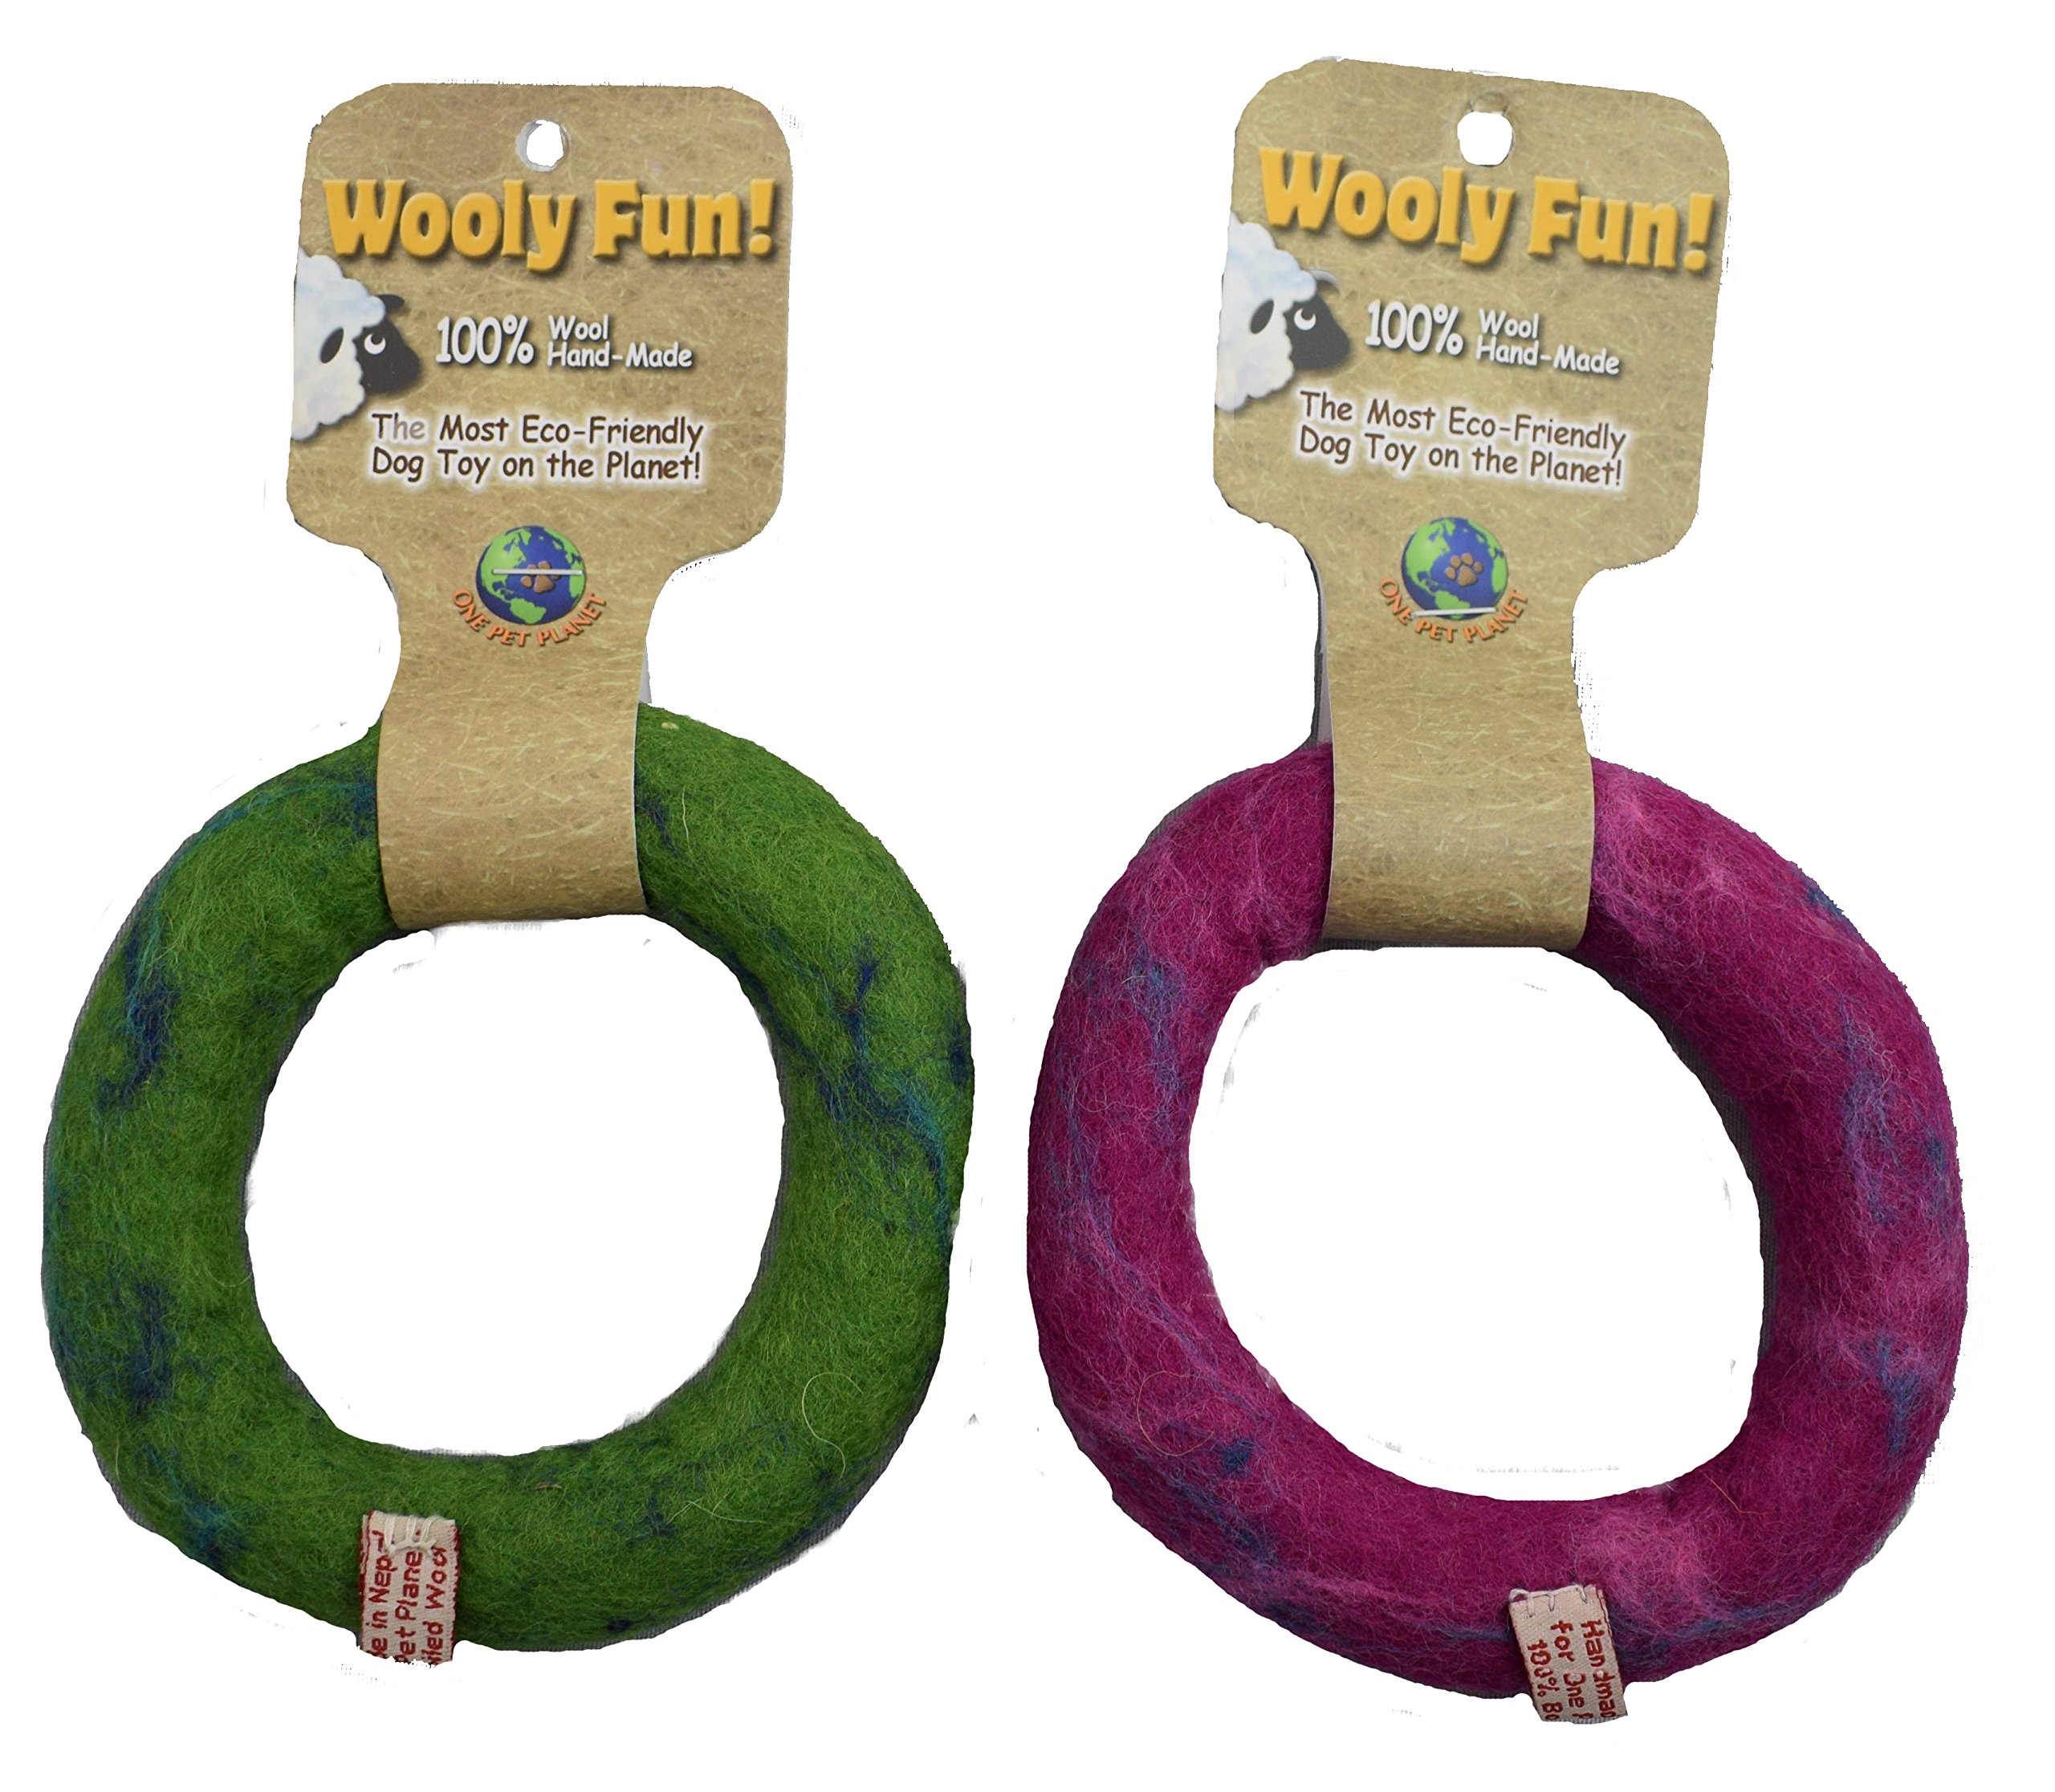 One Pet Planet 86174 Wool Ring (6 Pack), Green/Magneta, 5'' by One Pet Planet (Image #1)